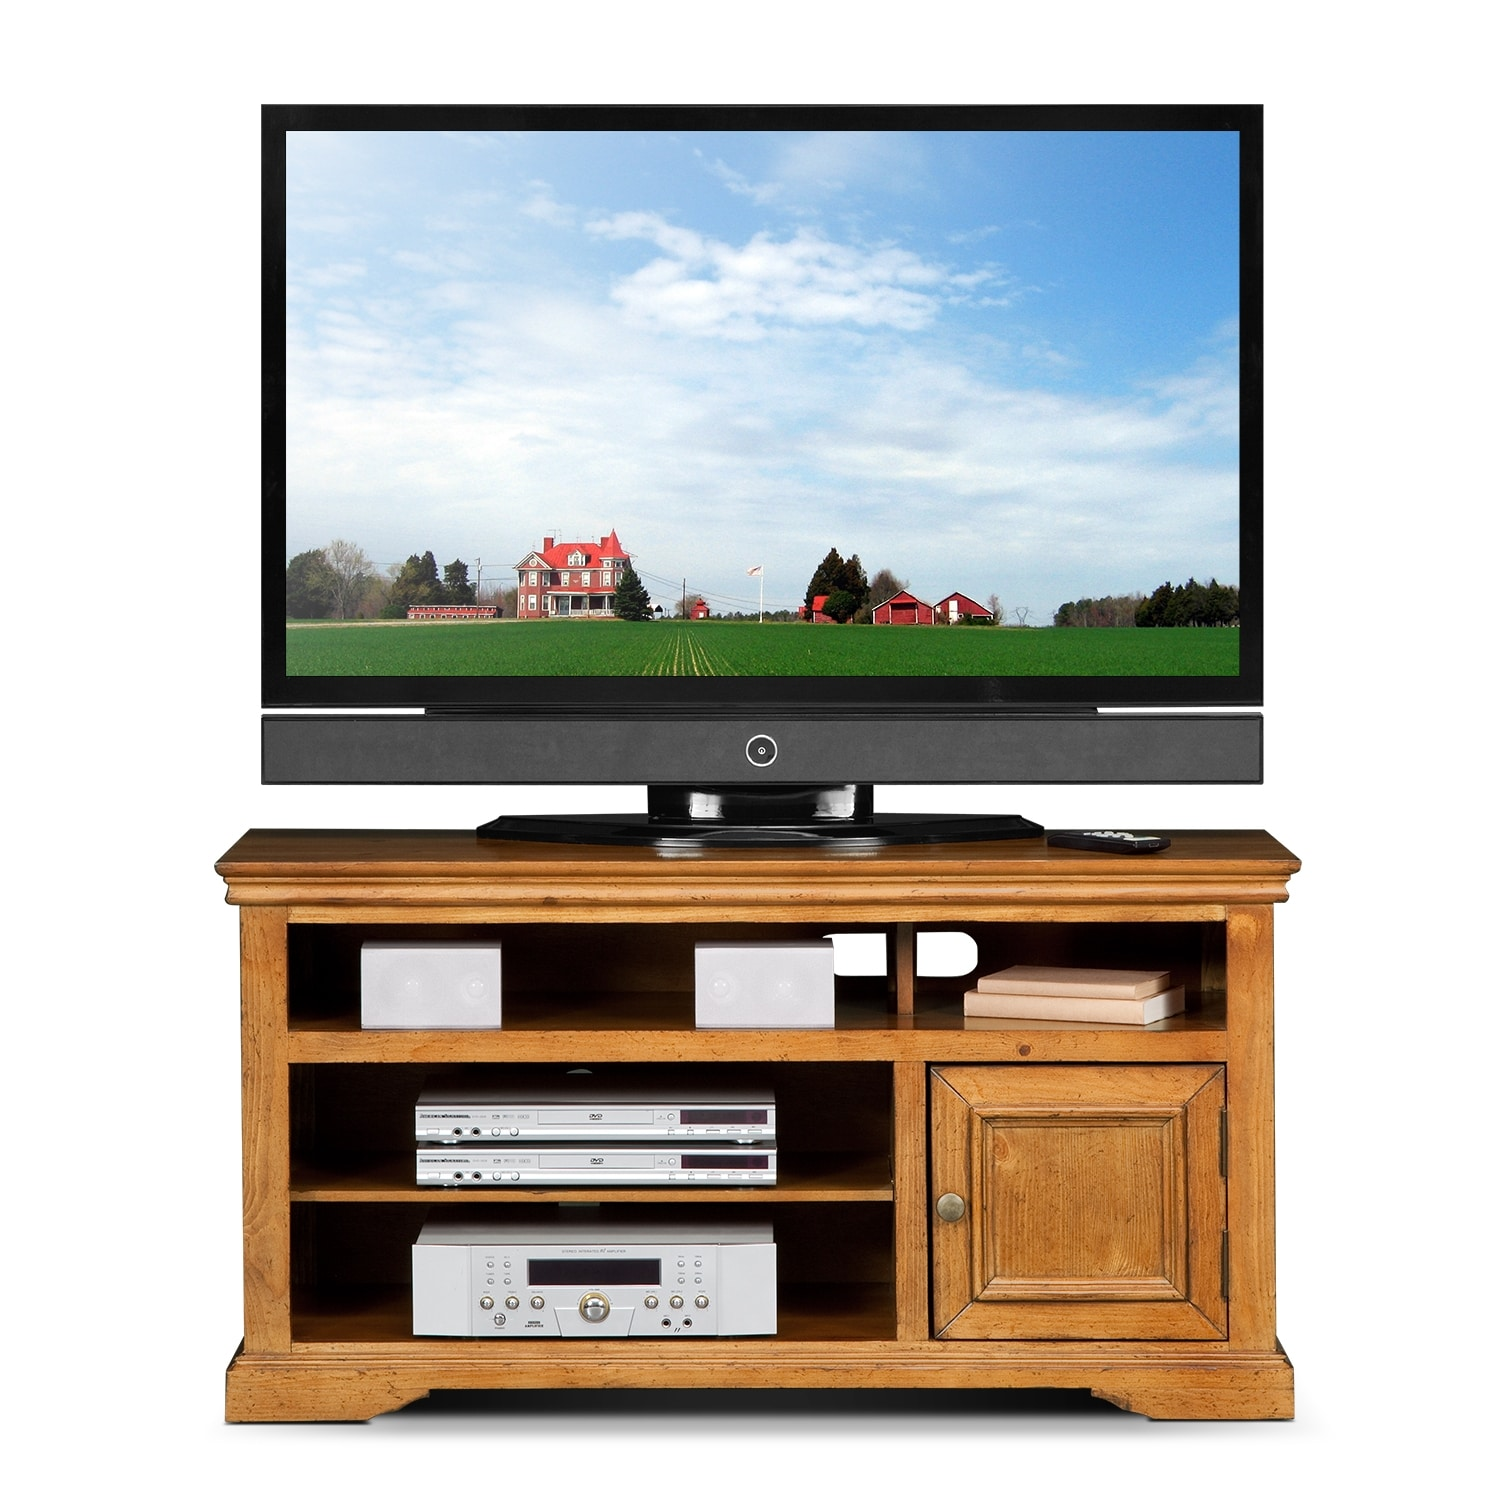 "50 Inch Tv Stands American Freight Furniture: Jenson 50"" TV Stand - Pine"